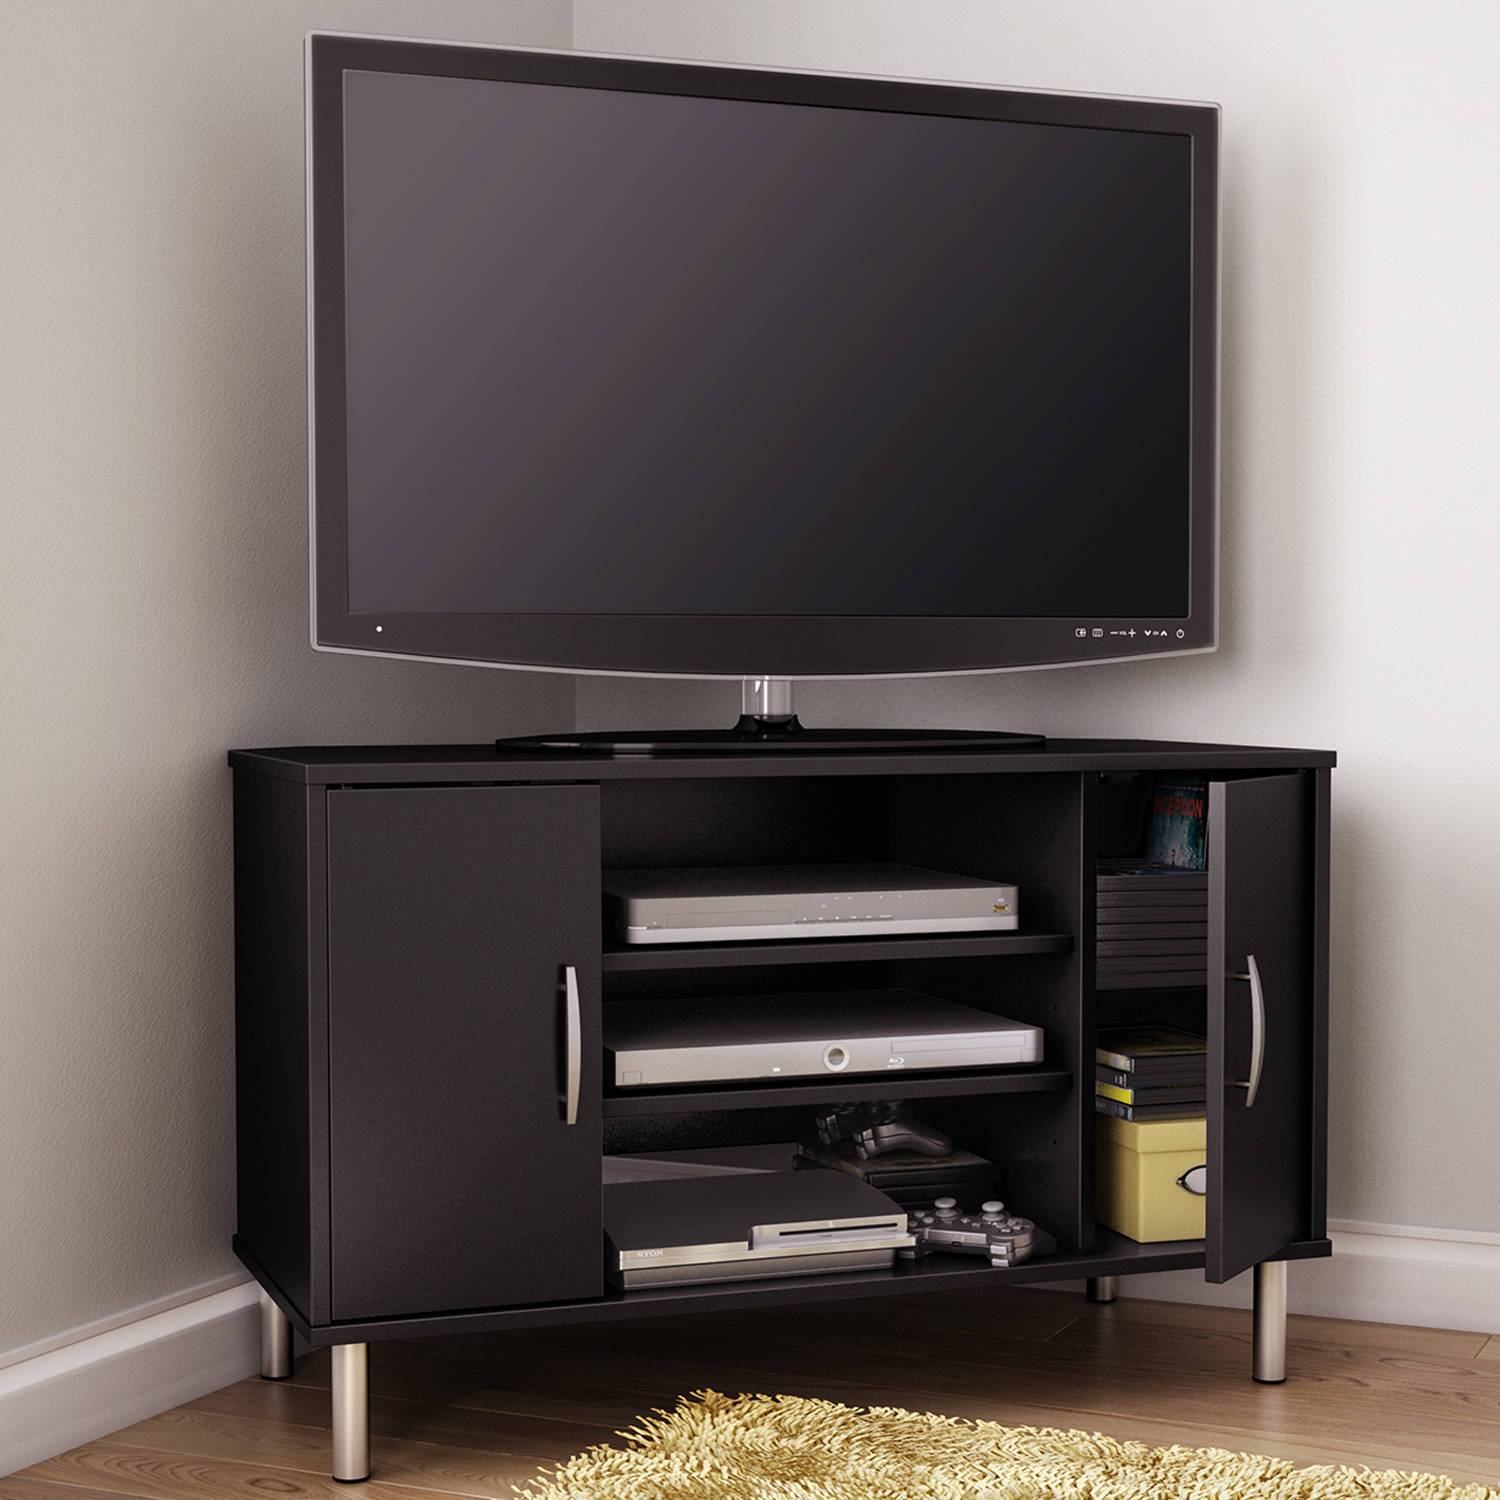 Pictures of corner tv stands